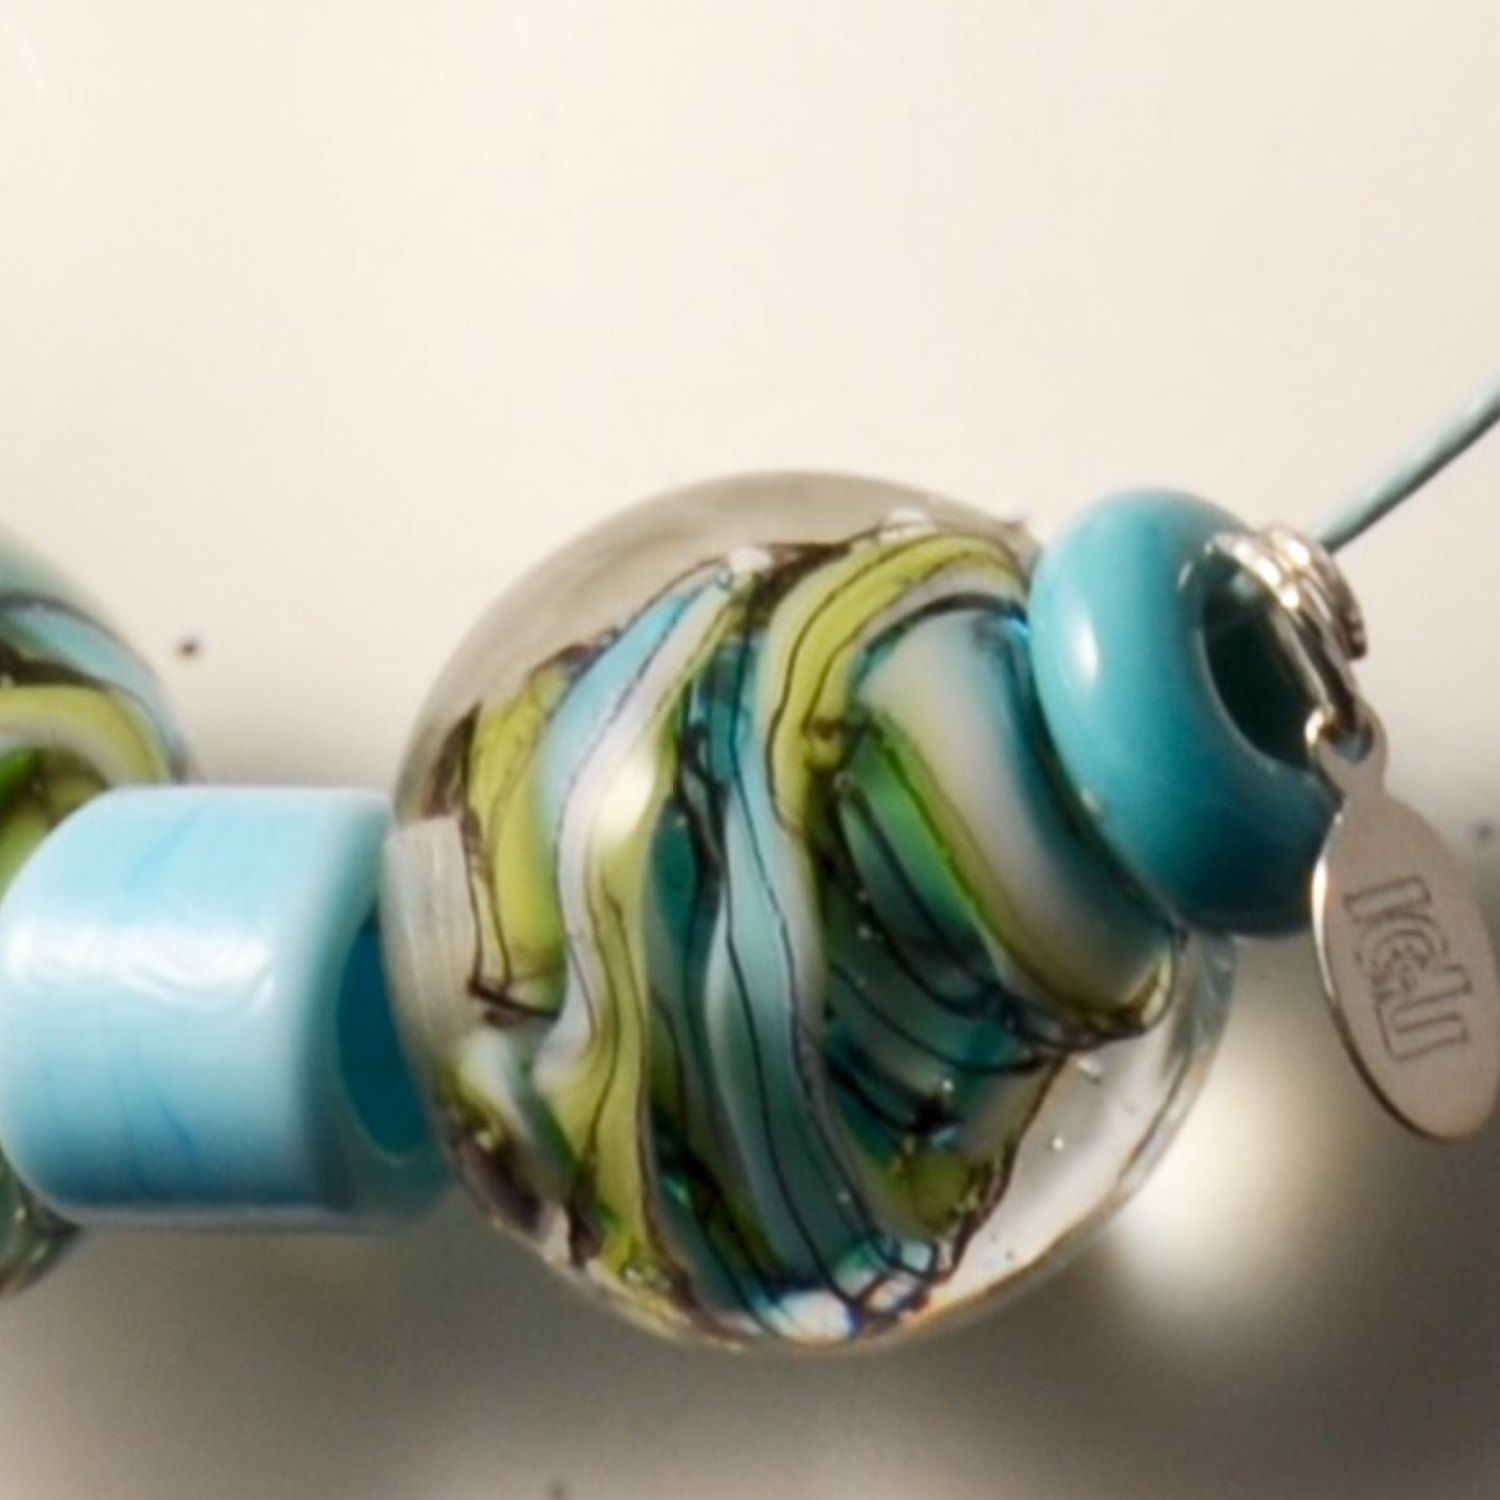 White, turquoise, apple green glass and hair black stringer swirl inside clear transparent glass to make this solid, marble like beads. Simple elegant everyday stunning glass necklace. Lampwork. Comes in a handcrafted wooden gift box